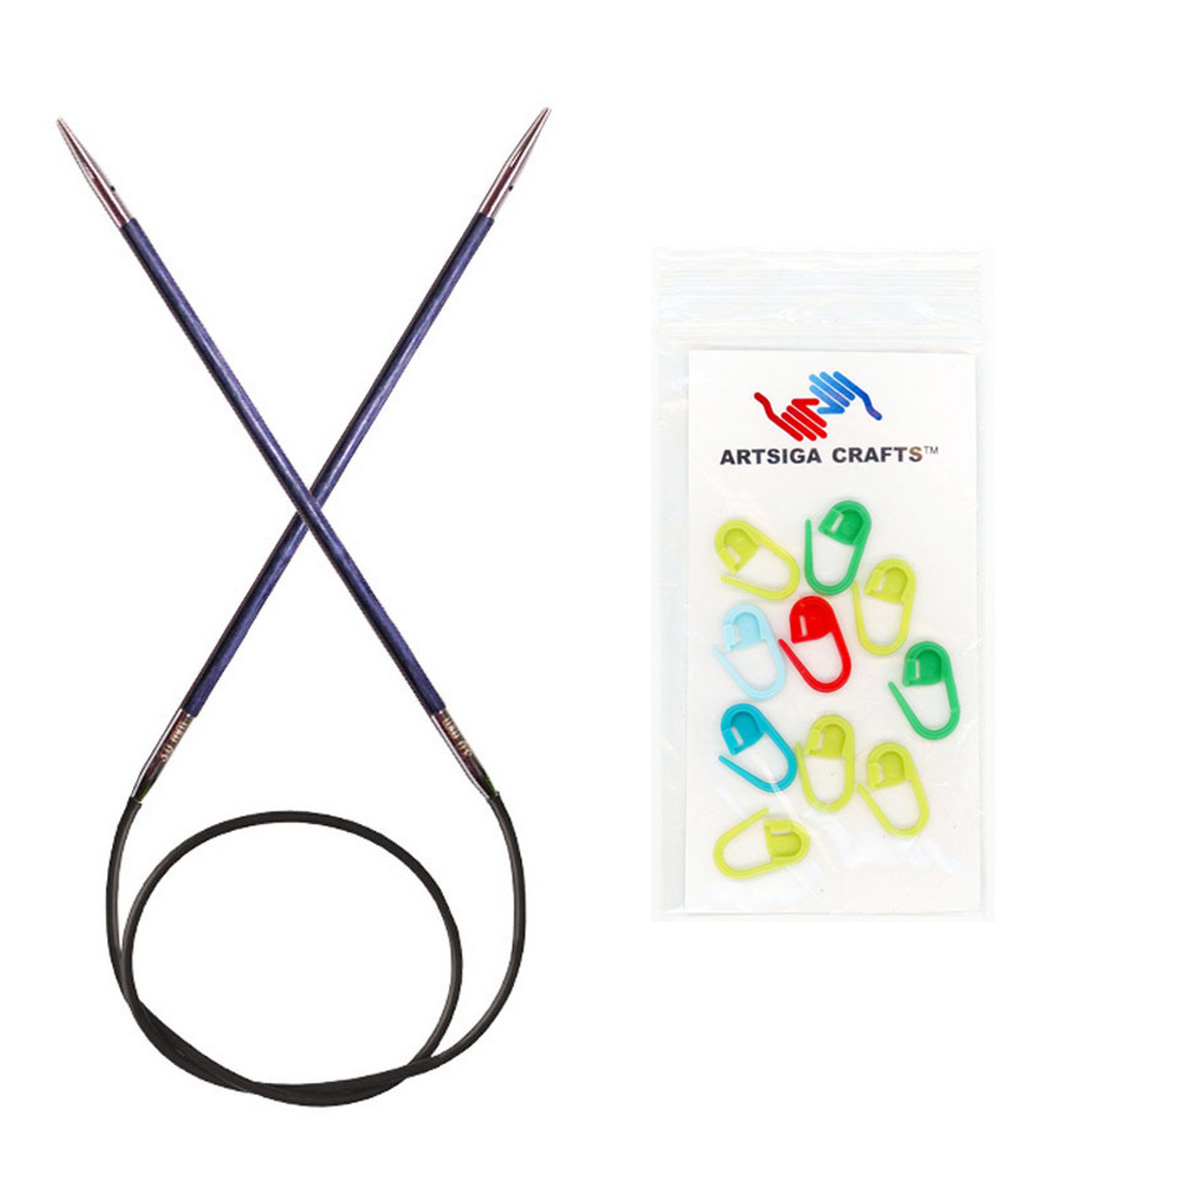 Knitter's Pride Bundle: Royale Circular 32-inch (80cm) Knitting Needles with 10 Artsiga Crafts Stitch Markers